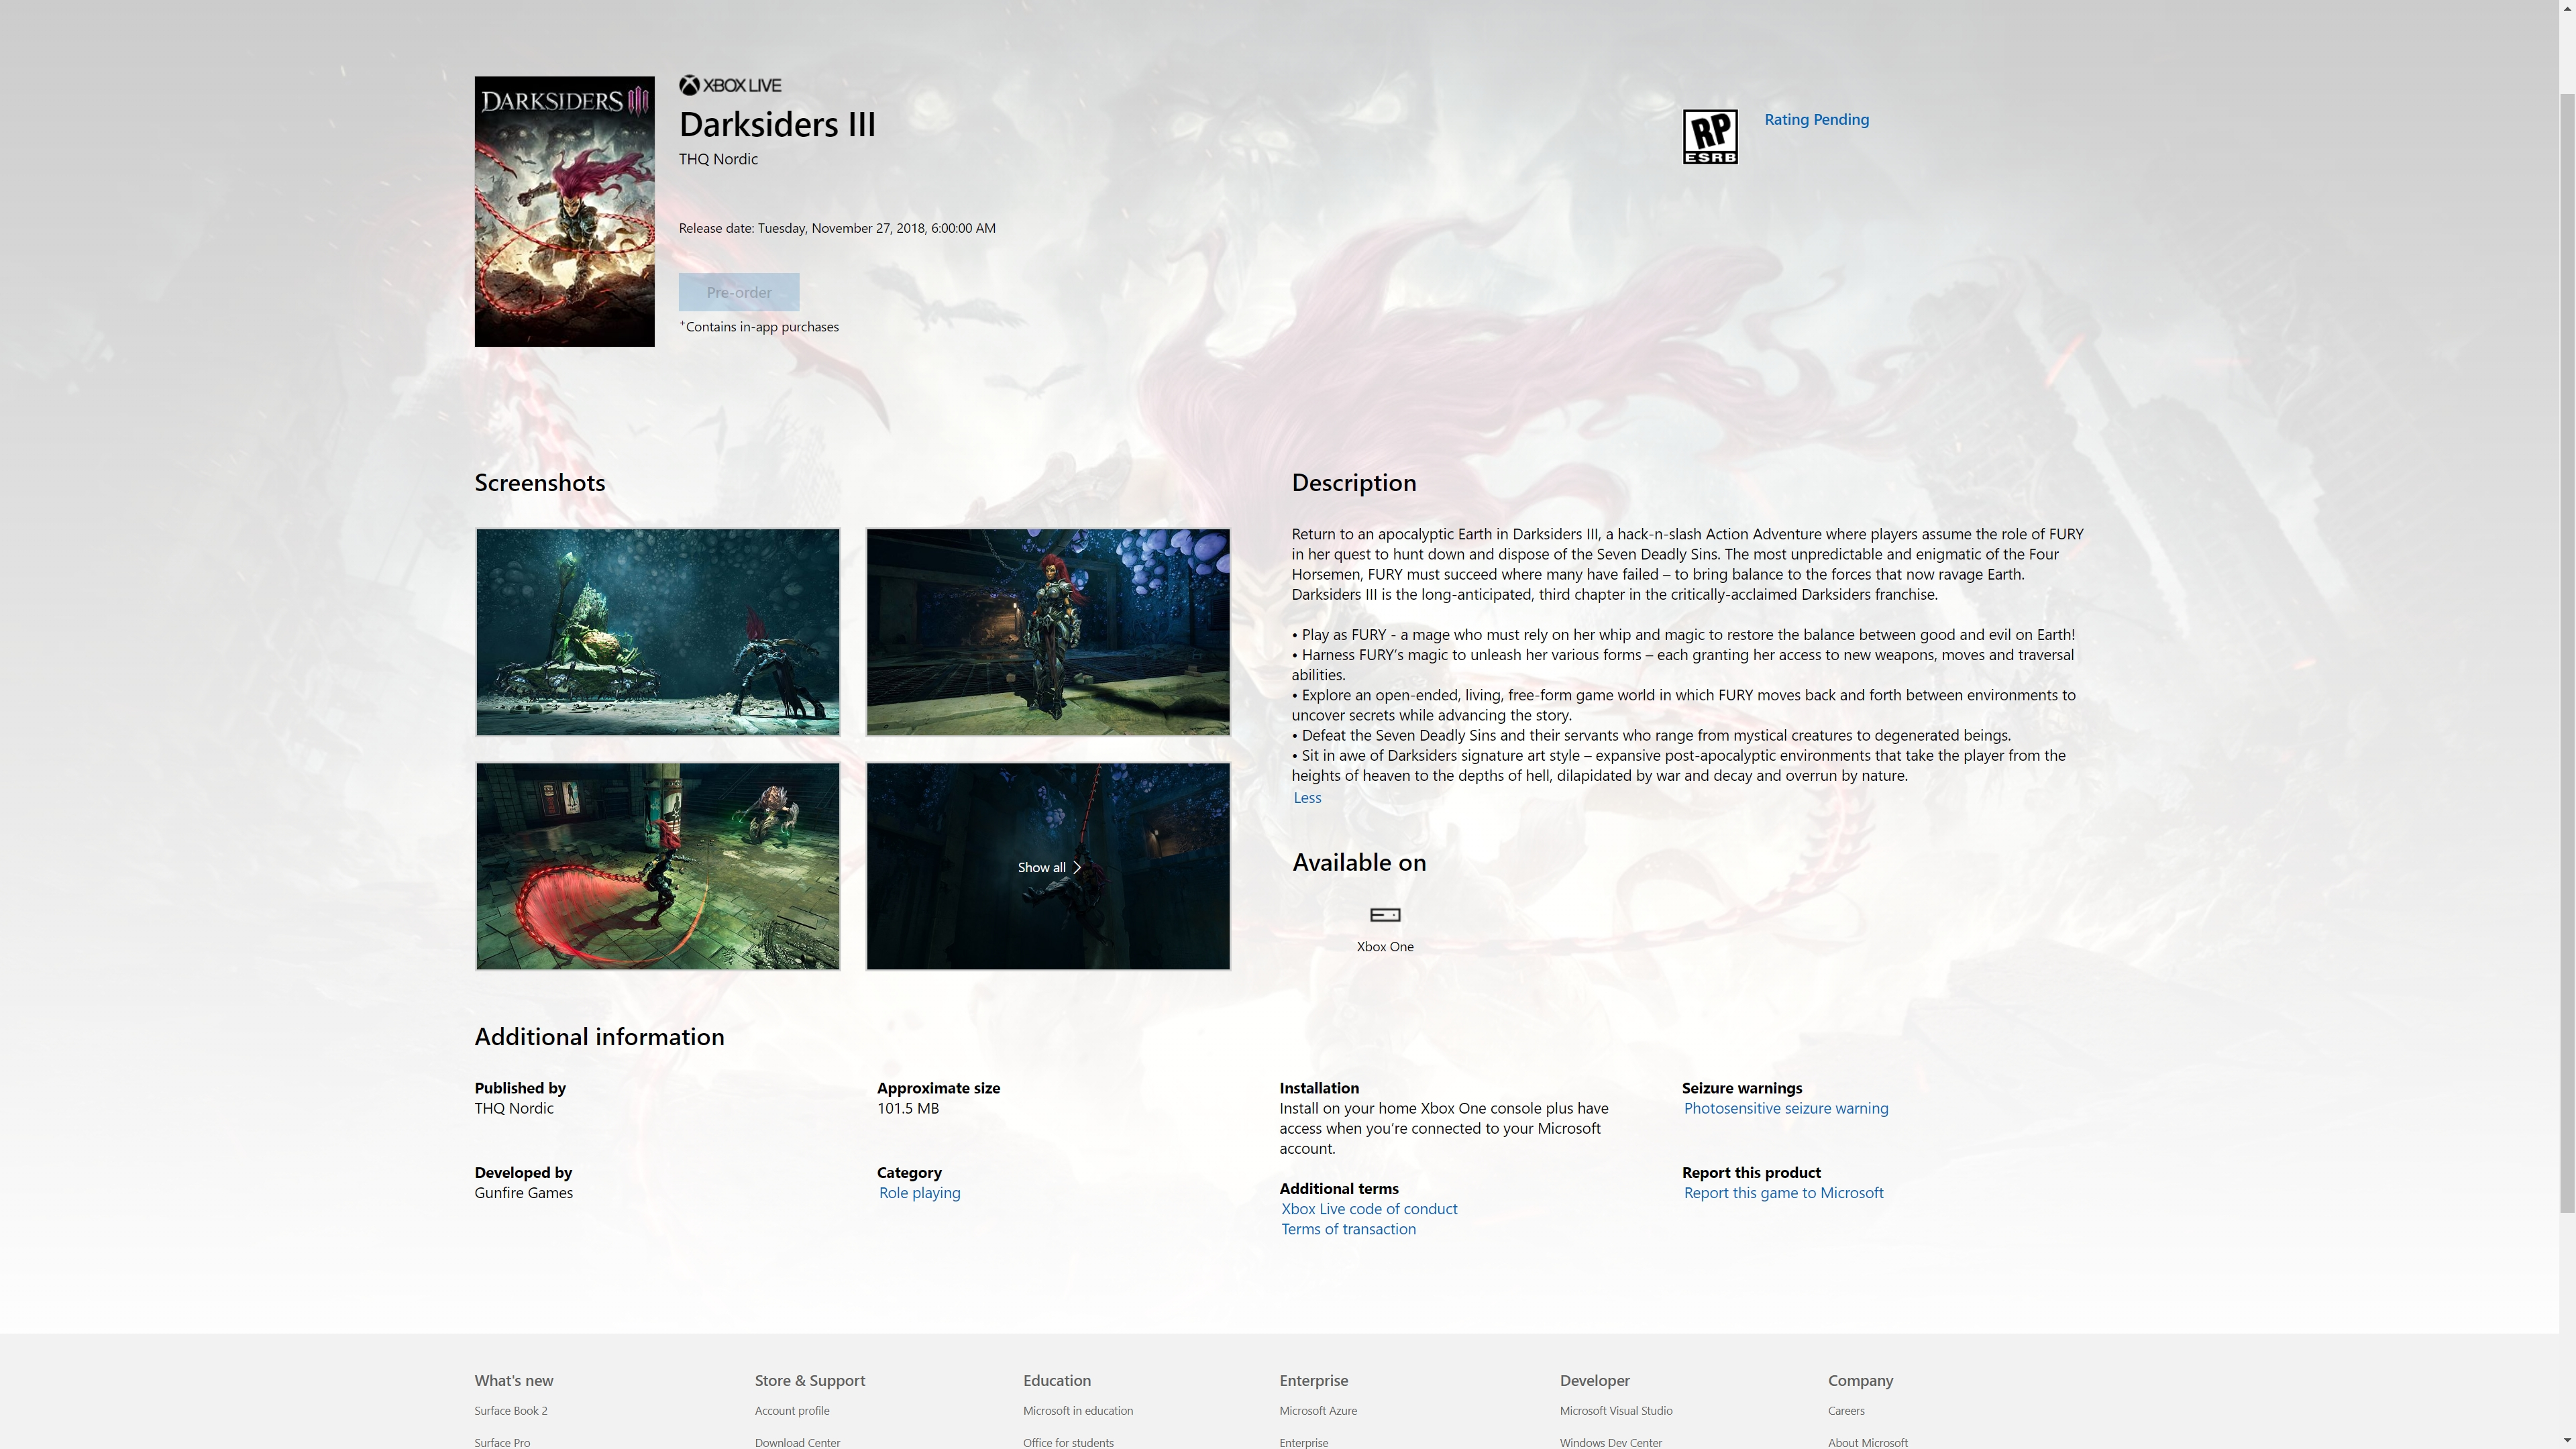 The Release Date for Darksiders 3 Has Been Revealed